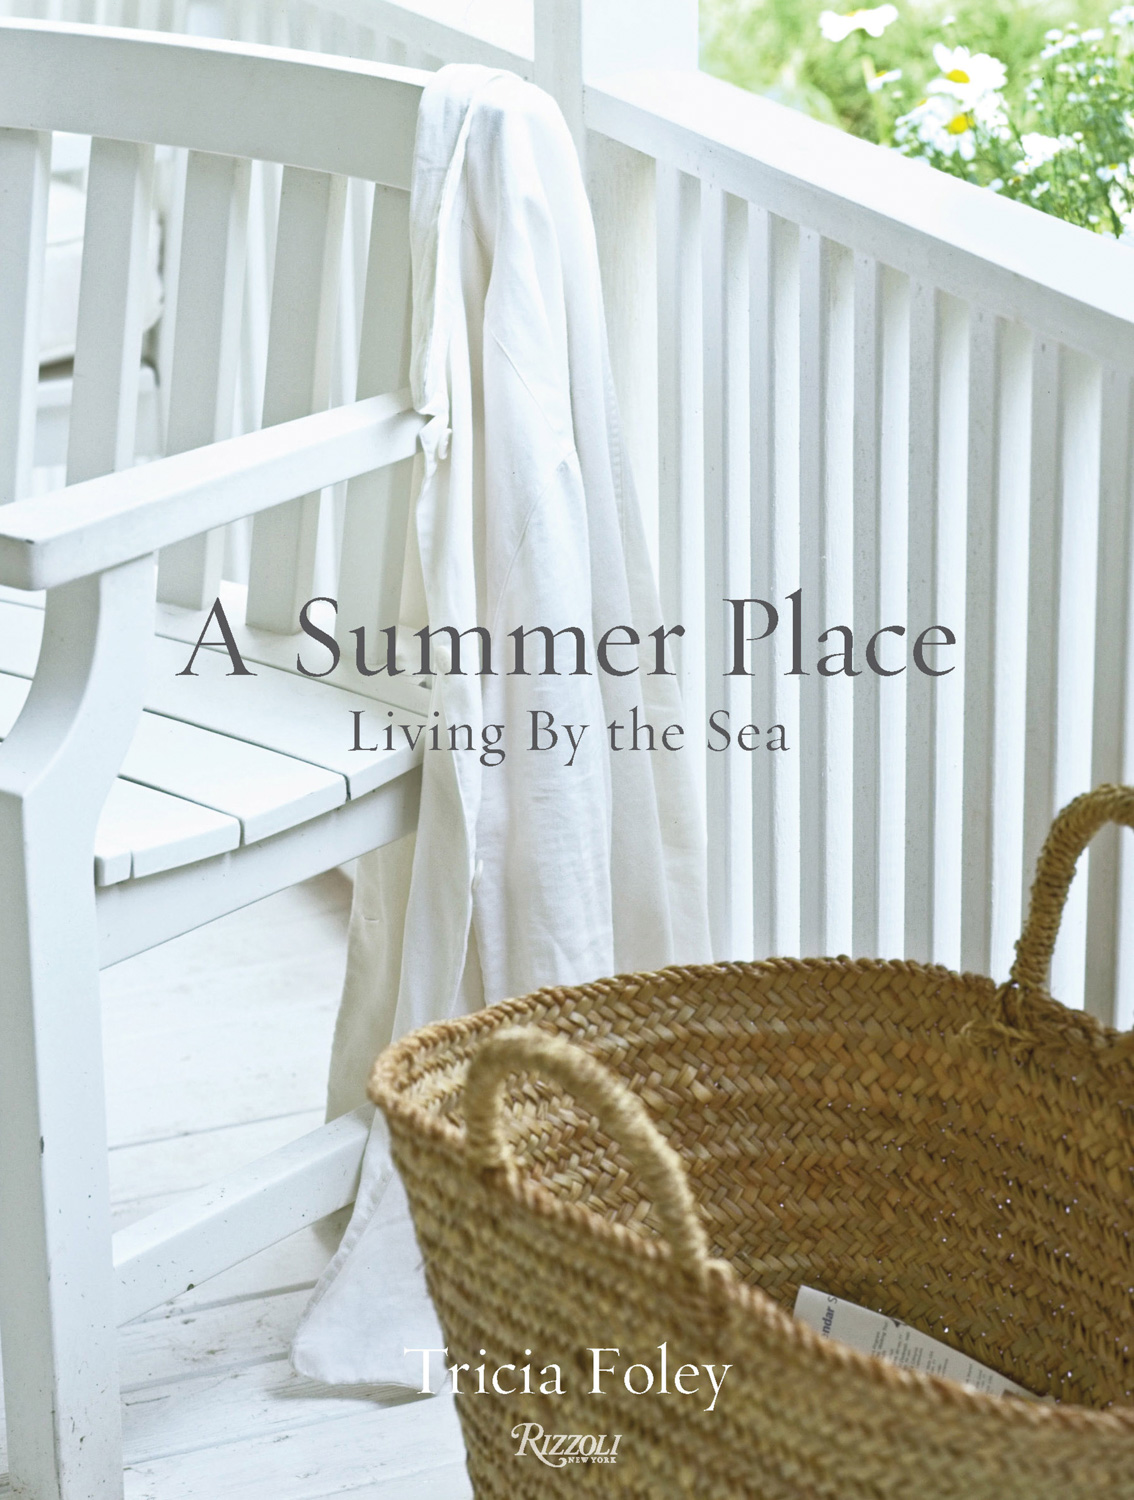 A Summer Place book cover - basket with white chair